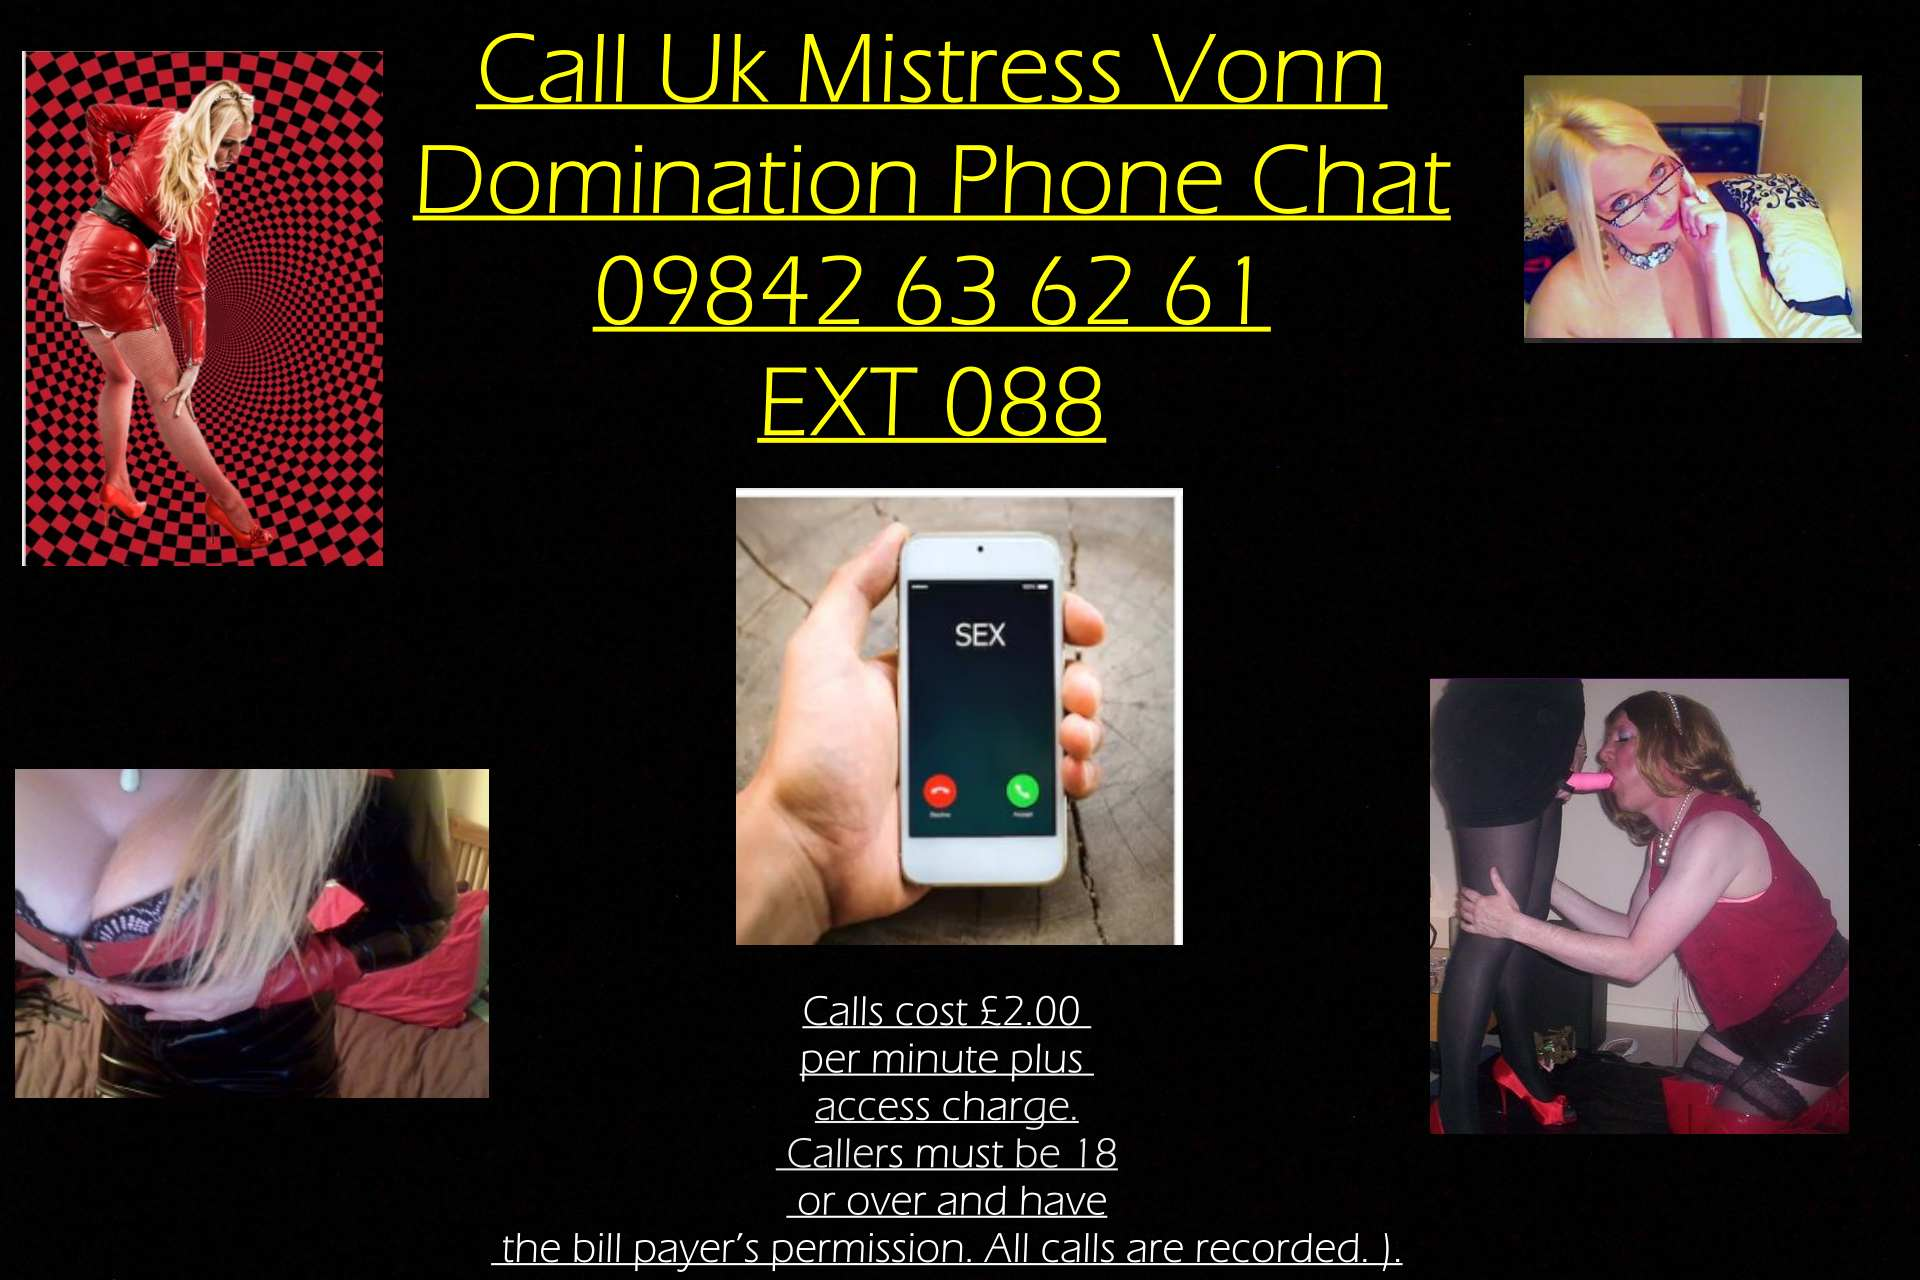 Uk Mistress Live The Female Dom For Domination Cam Shows – Online Mistress Ukmistresslive  the dominant Mistress on webcam who enjoys domination, slave training, sissy humiliation. Chic and curvy Femdom, for cams, phone chat and sms domination